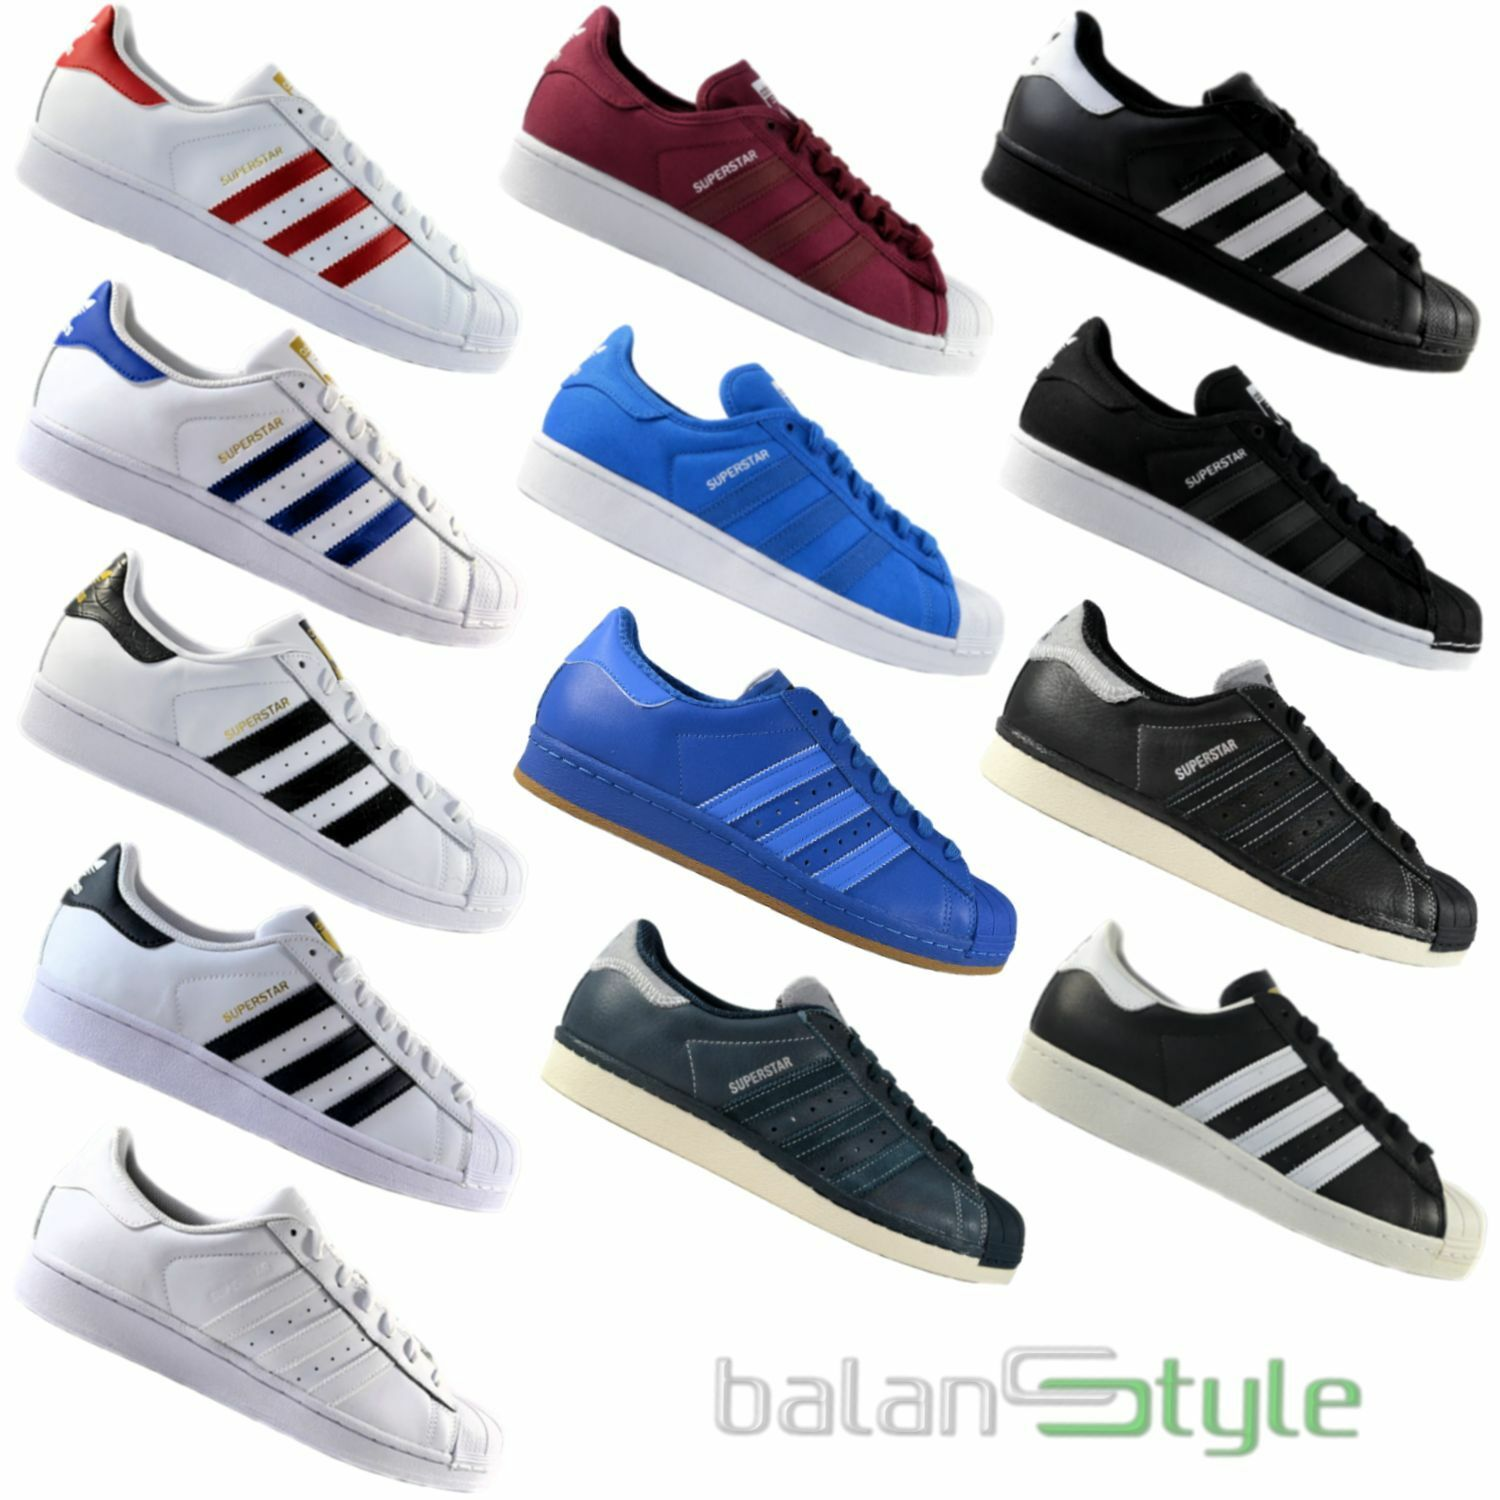 NEW ADIDAS ORIGINALS SUPERSTAR FOUNDATION / EAST classiche RIVER RIVAL SALE Scarpe classiche EAST da uomo ae40dc